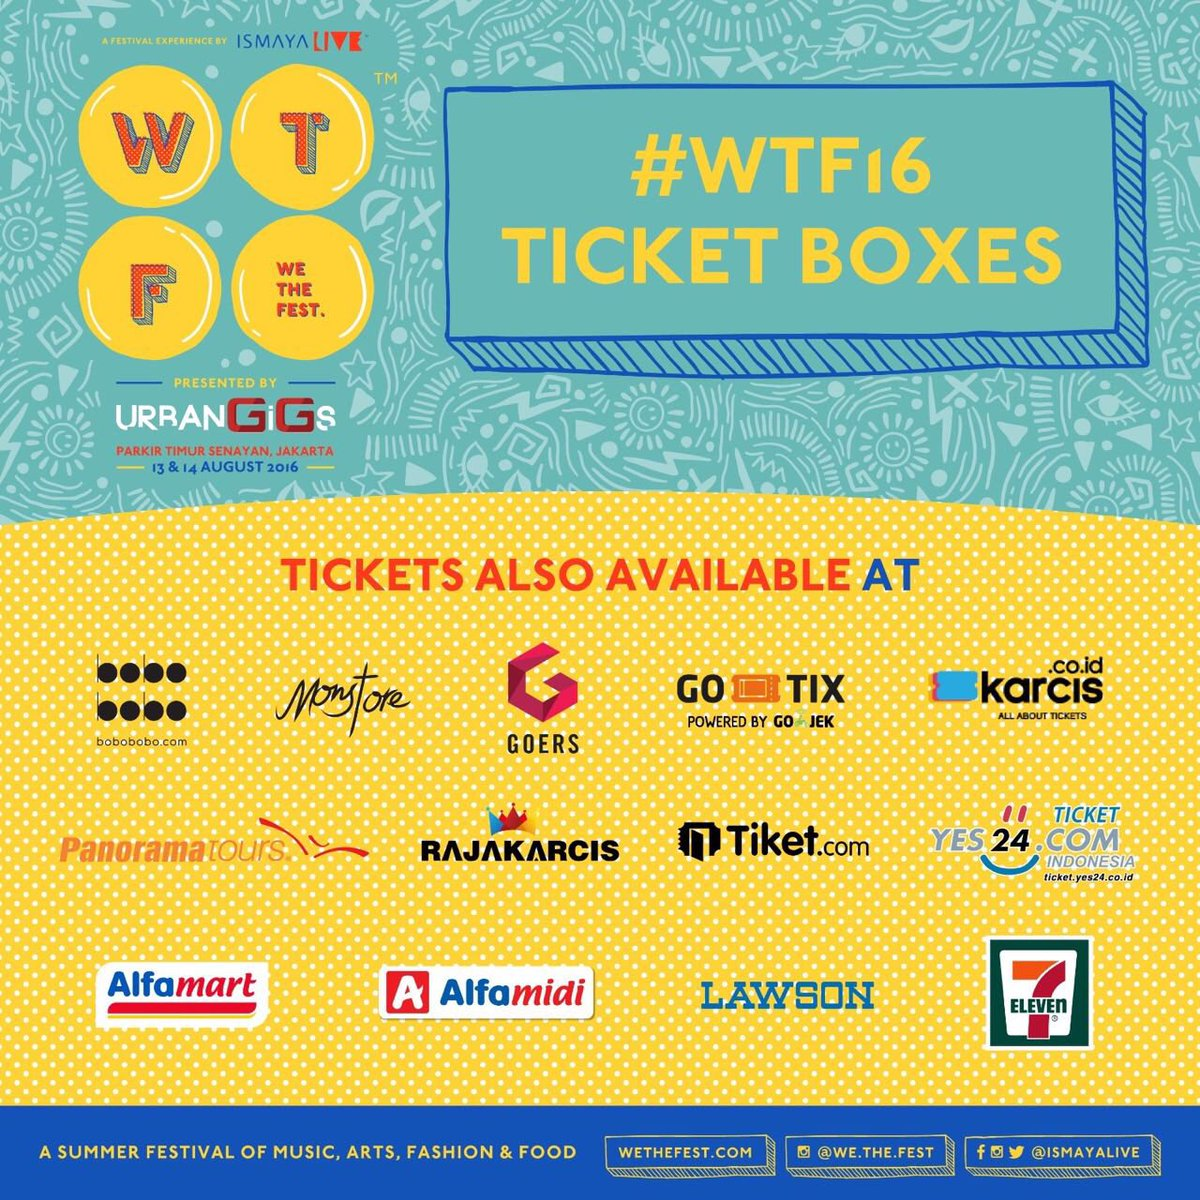 We The Fest on Twitter: Now! Its time to buy your #WTF16